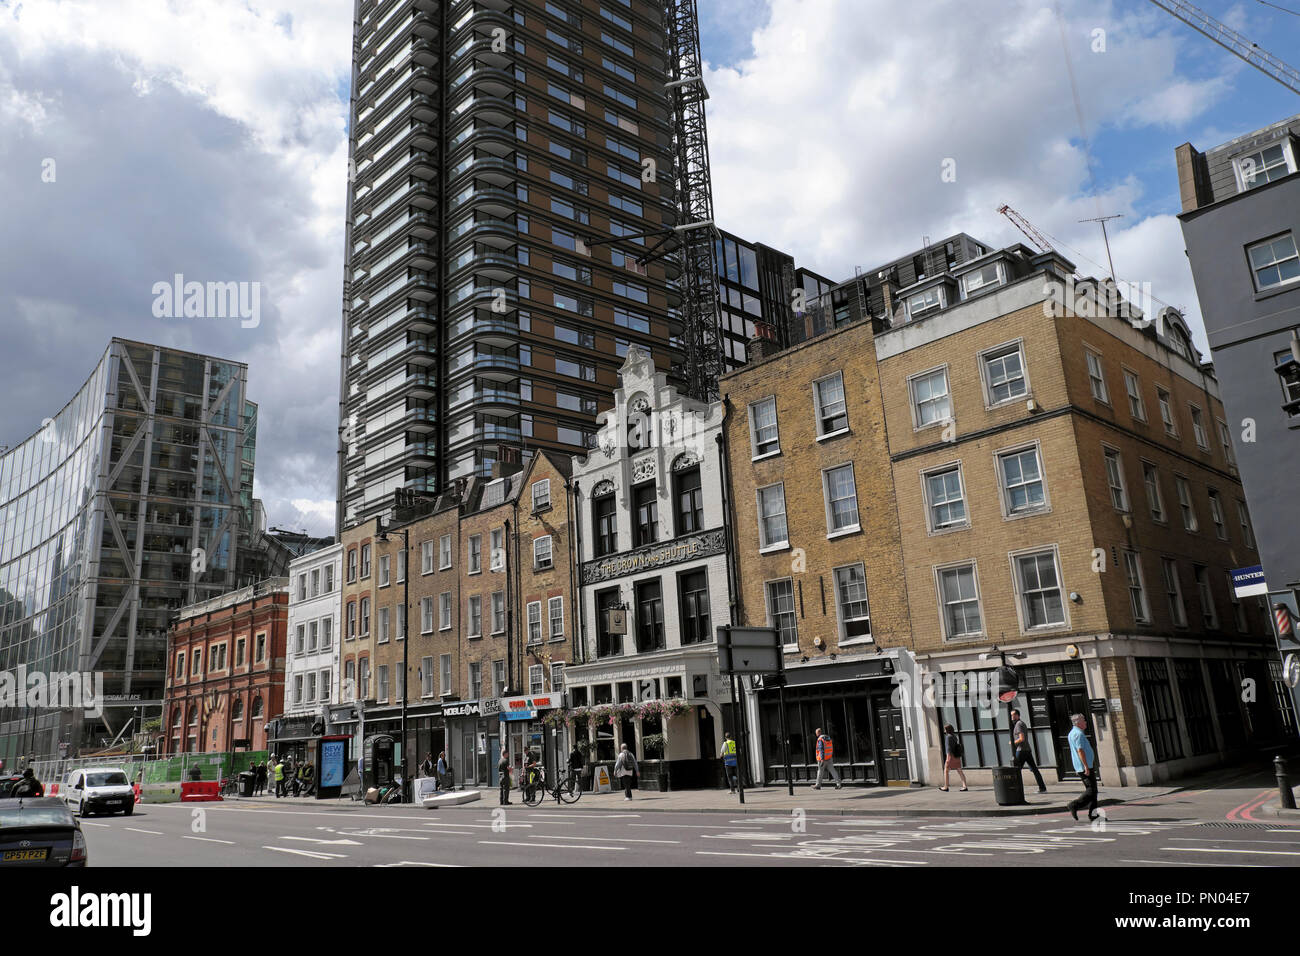 Street view of Norton Folgate and high rise modern Principal Tower in the Tower Hamlets near Spitalfields East London England  UK  KATHY DEWITT - Stock Image